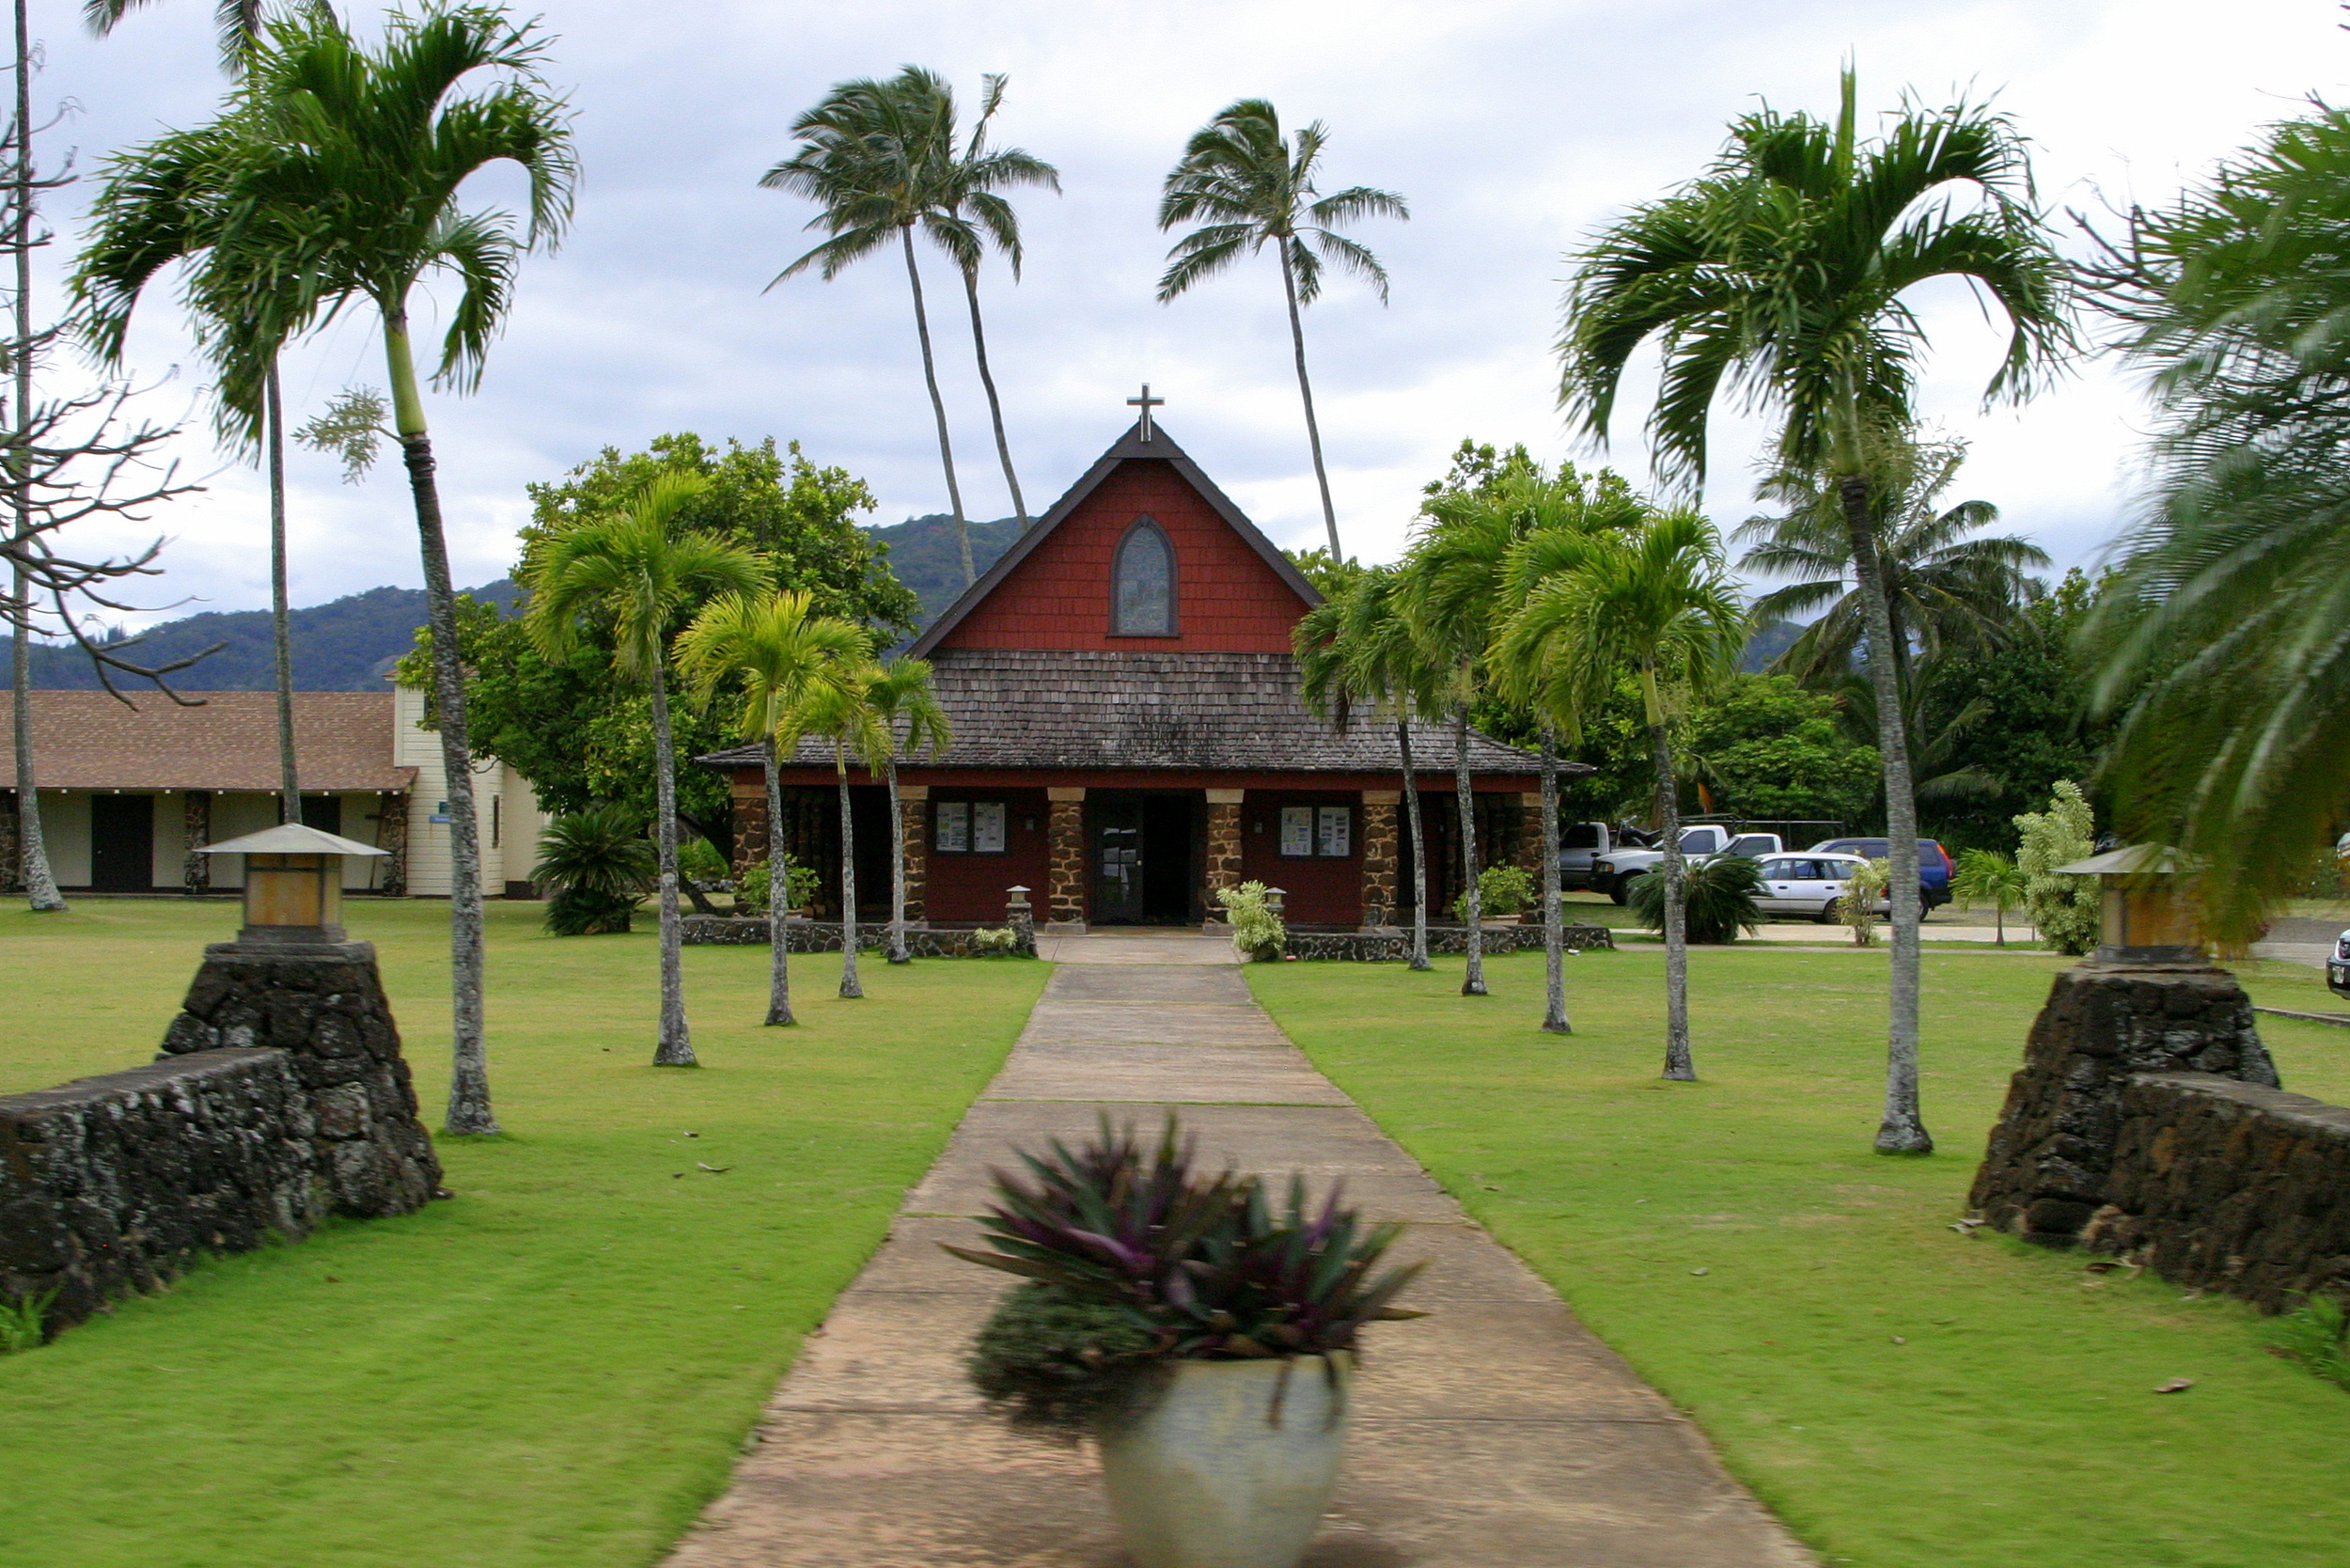 A church on Kauai